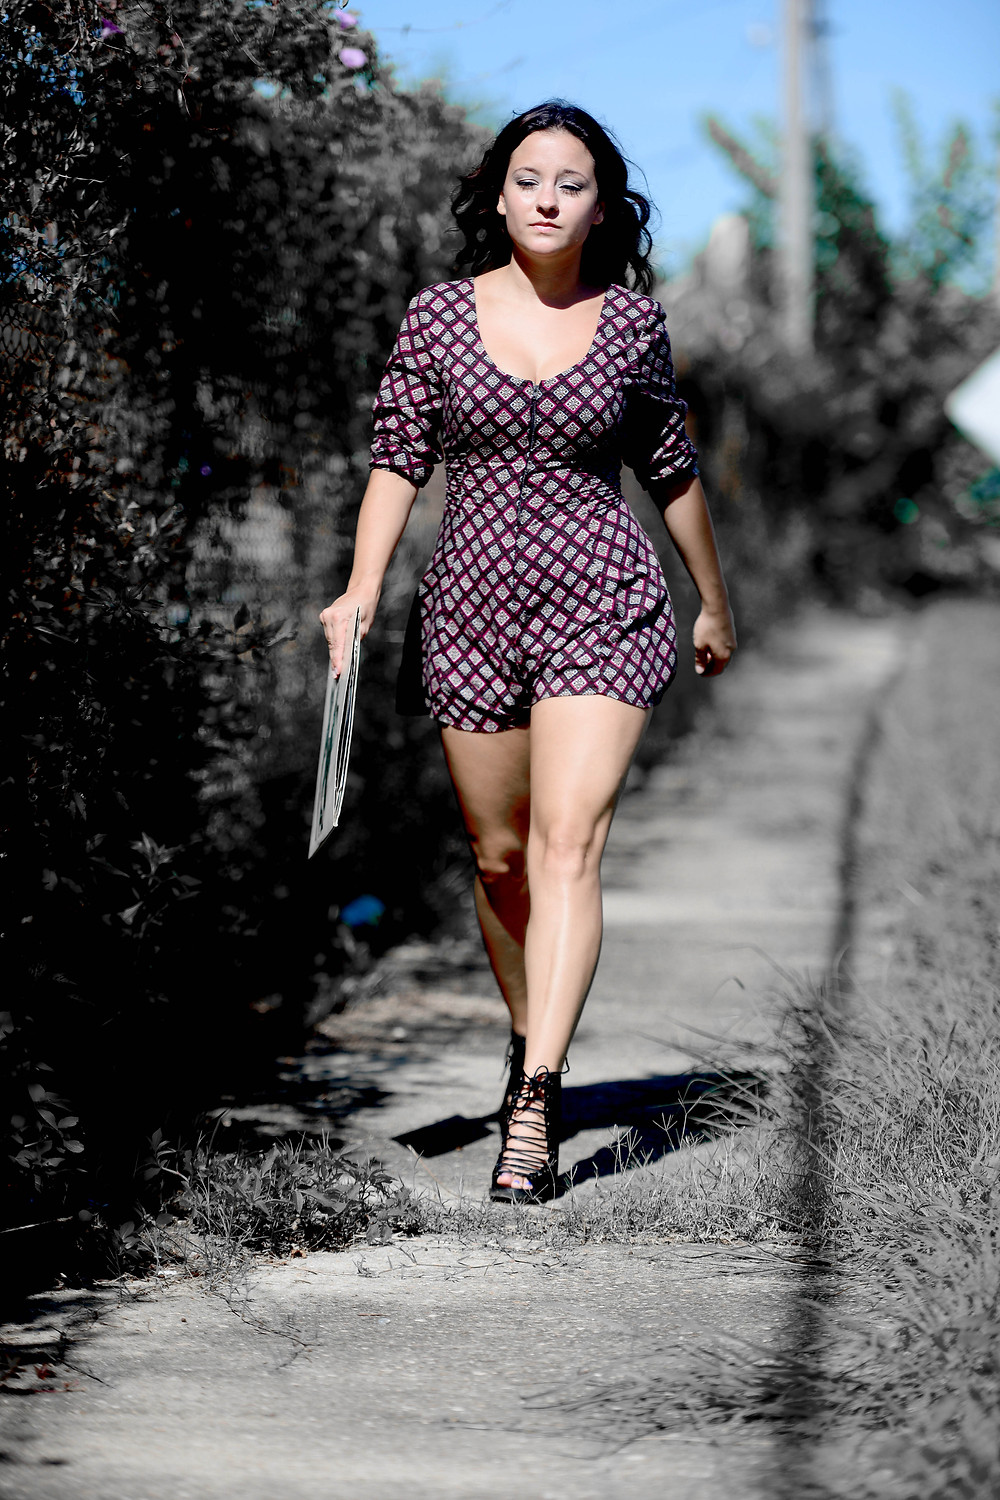 A fashion blogger walks down the sidewalk in an Urban Outfitters romper.